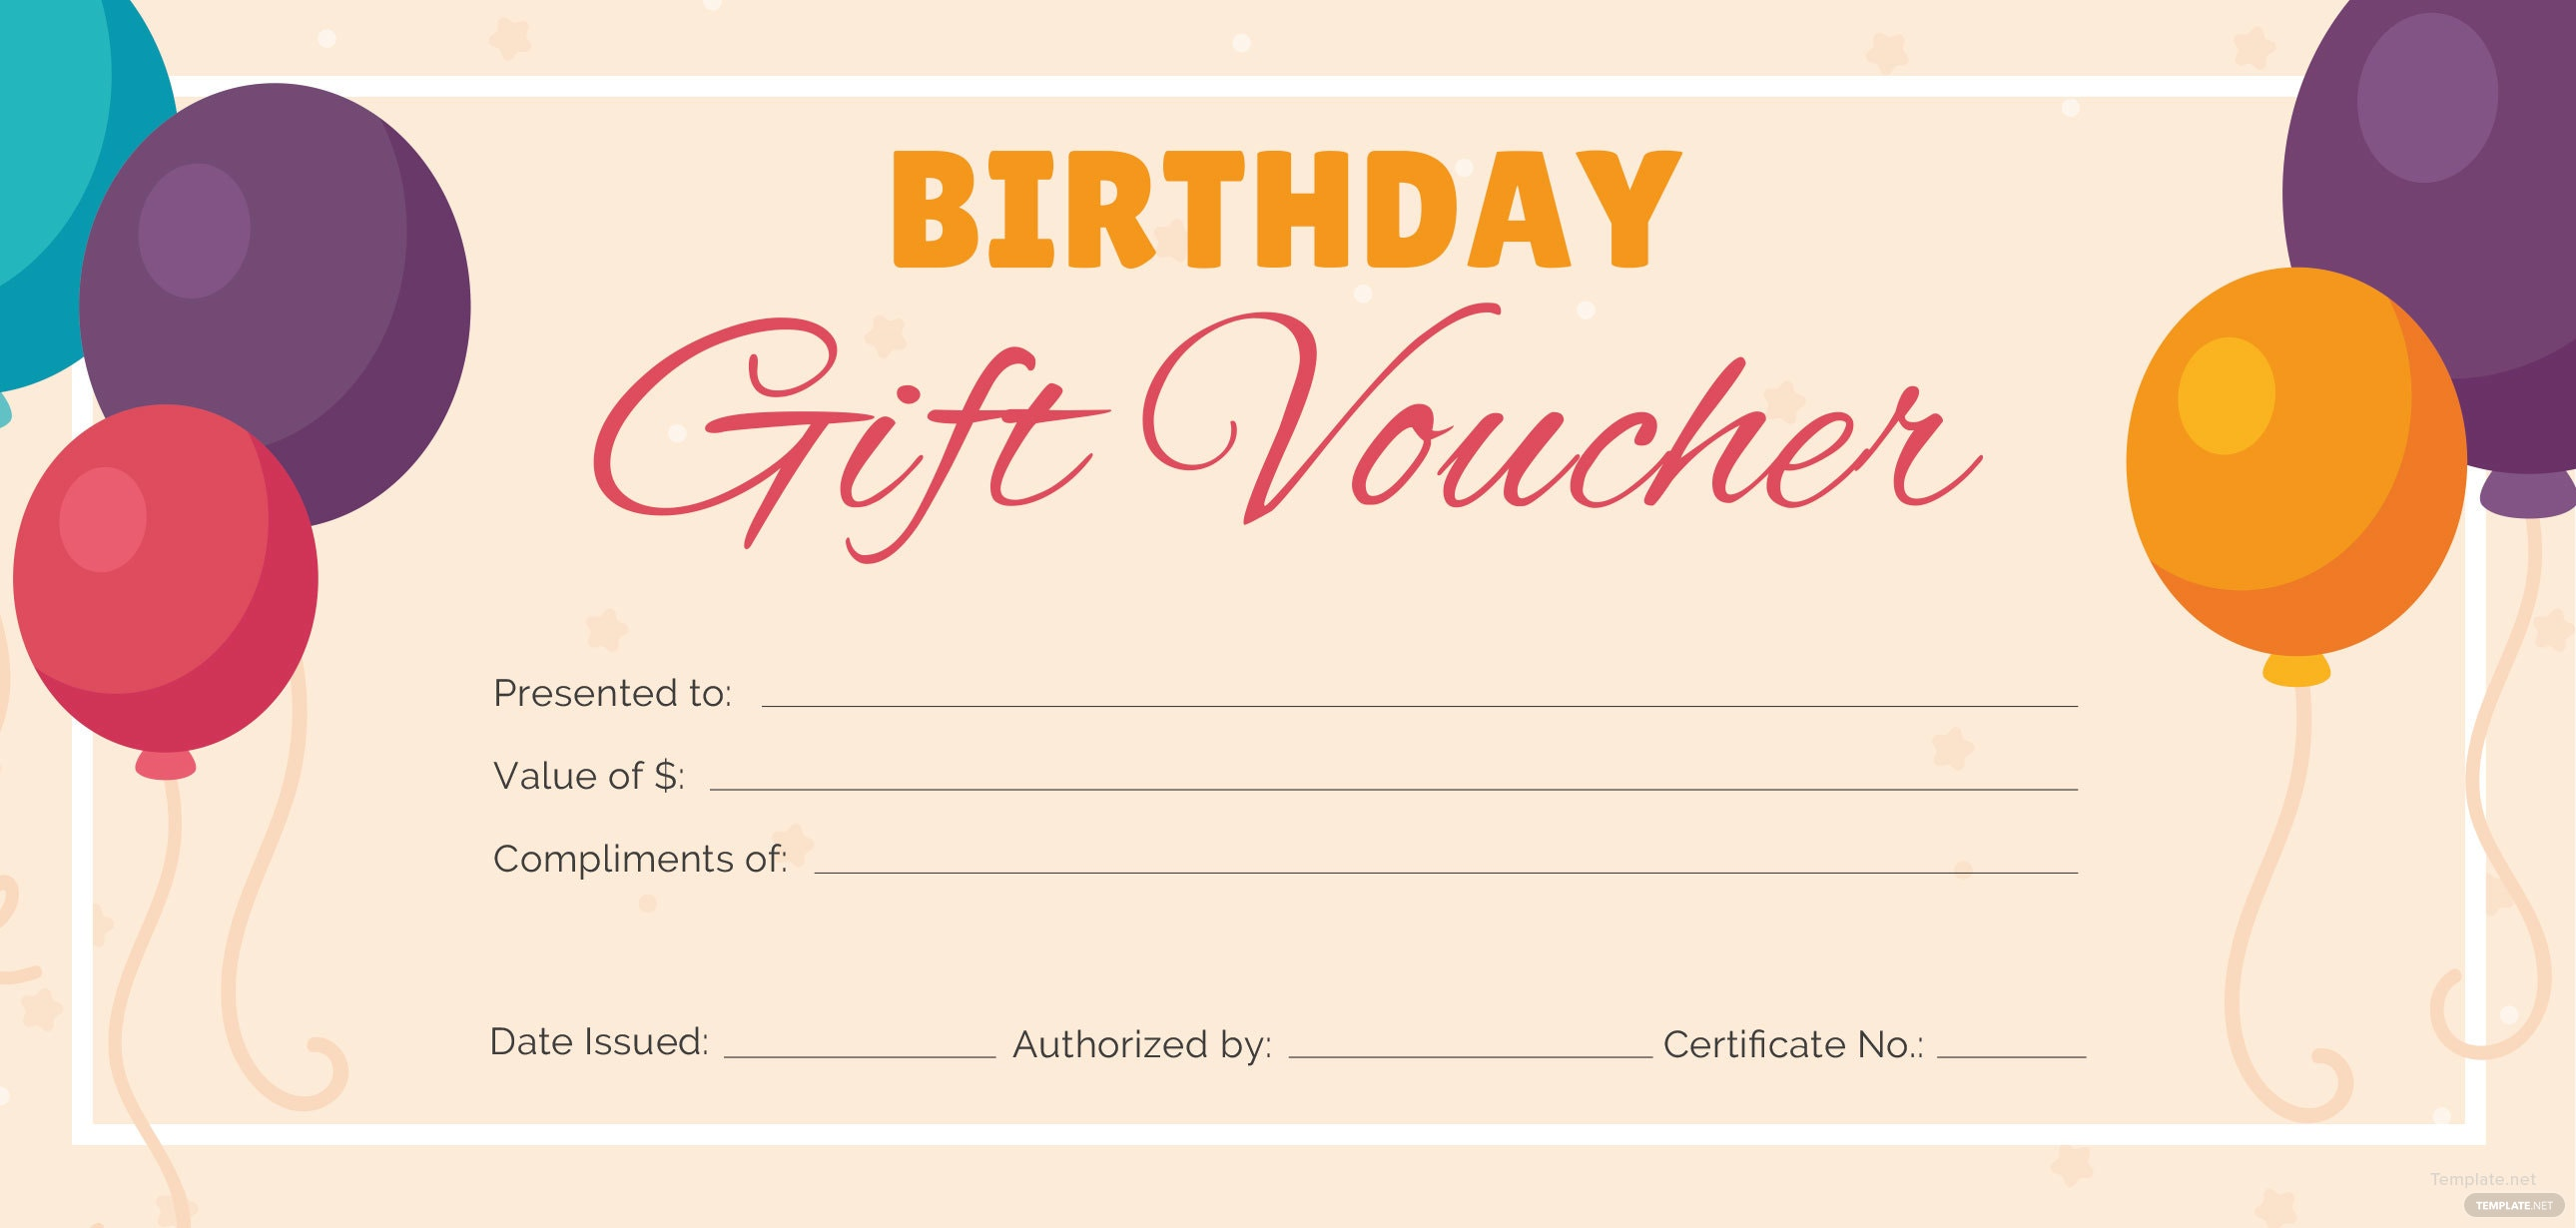 free birthday gift voucher template in adobe photoshop illustrator microsoft word publisher. Black Bedroom Furniture Sets. Home Design Ideas